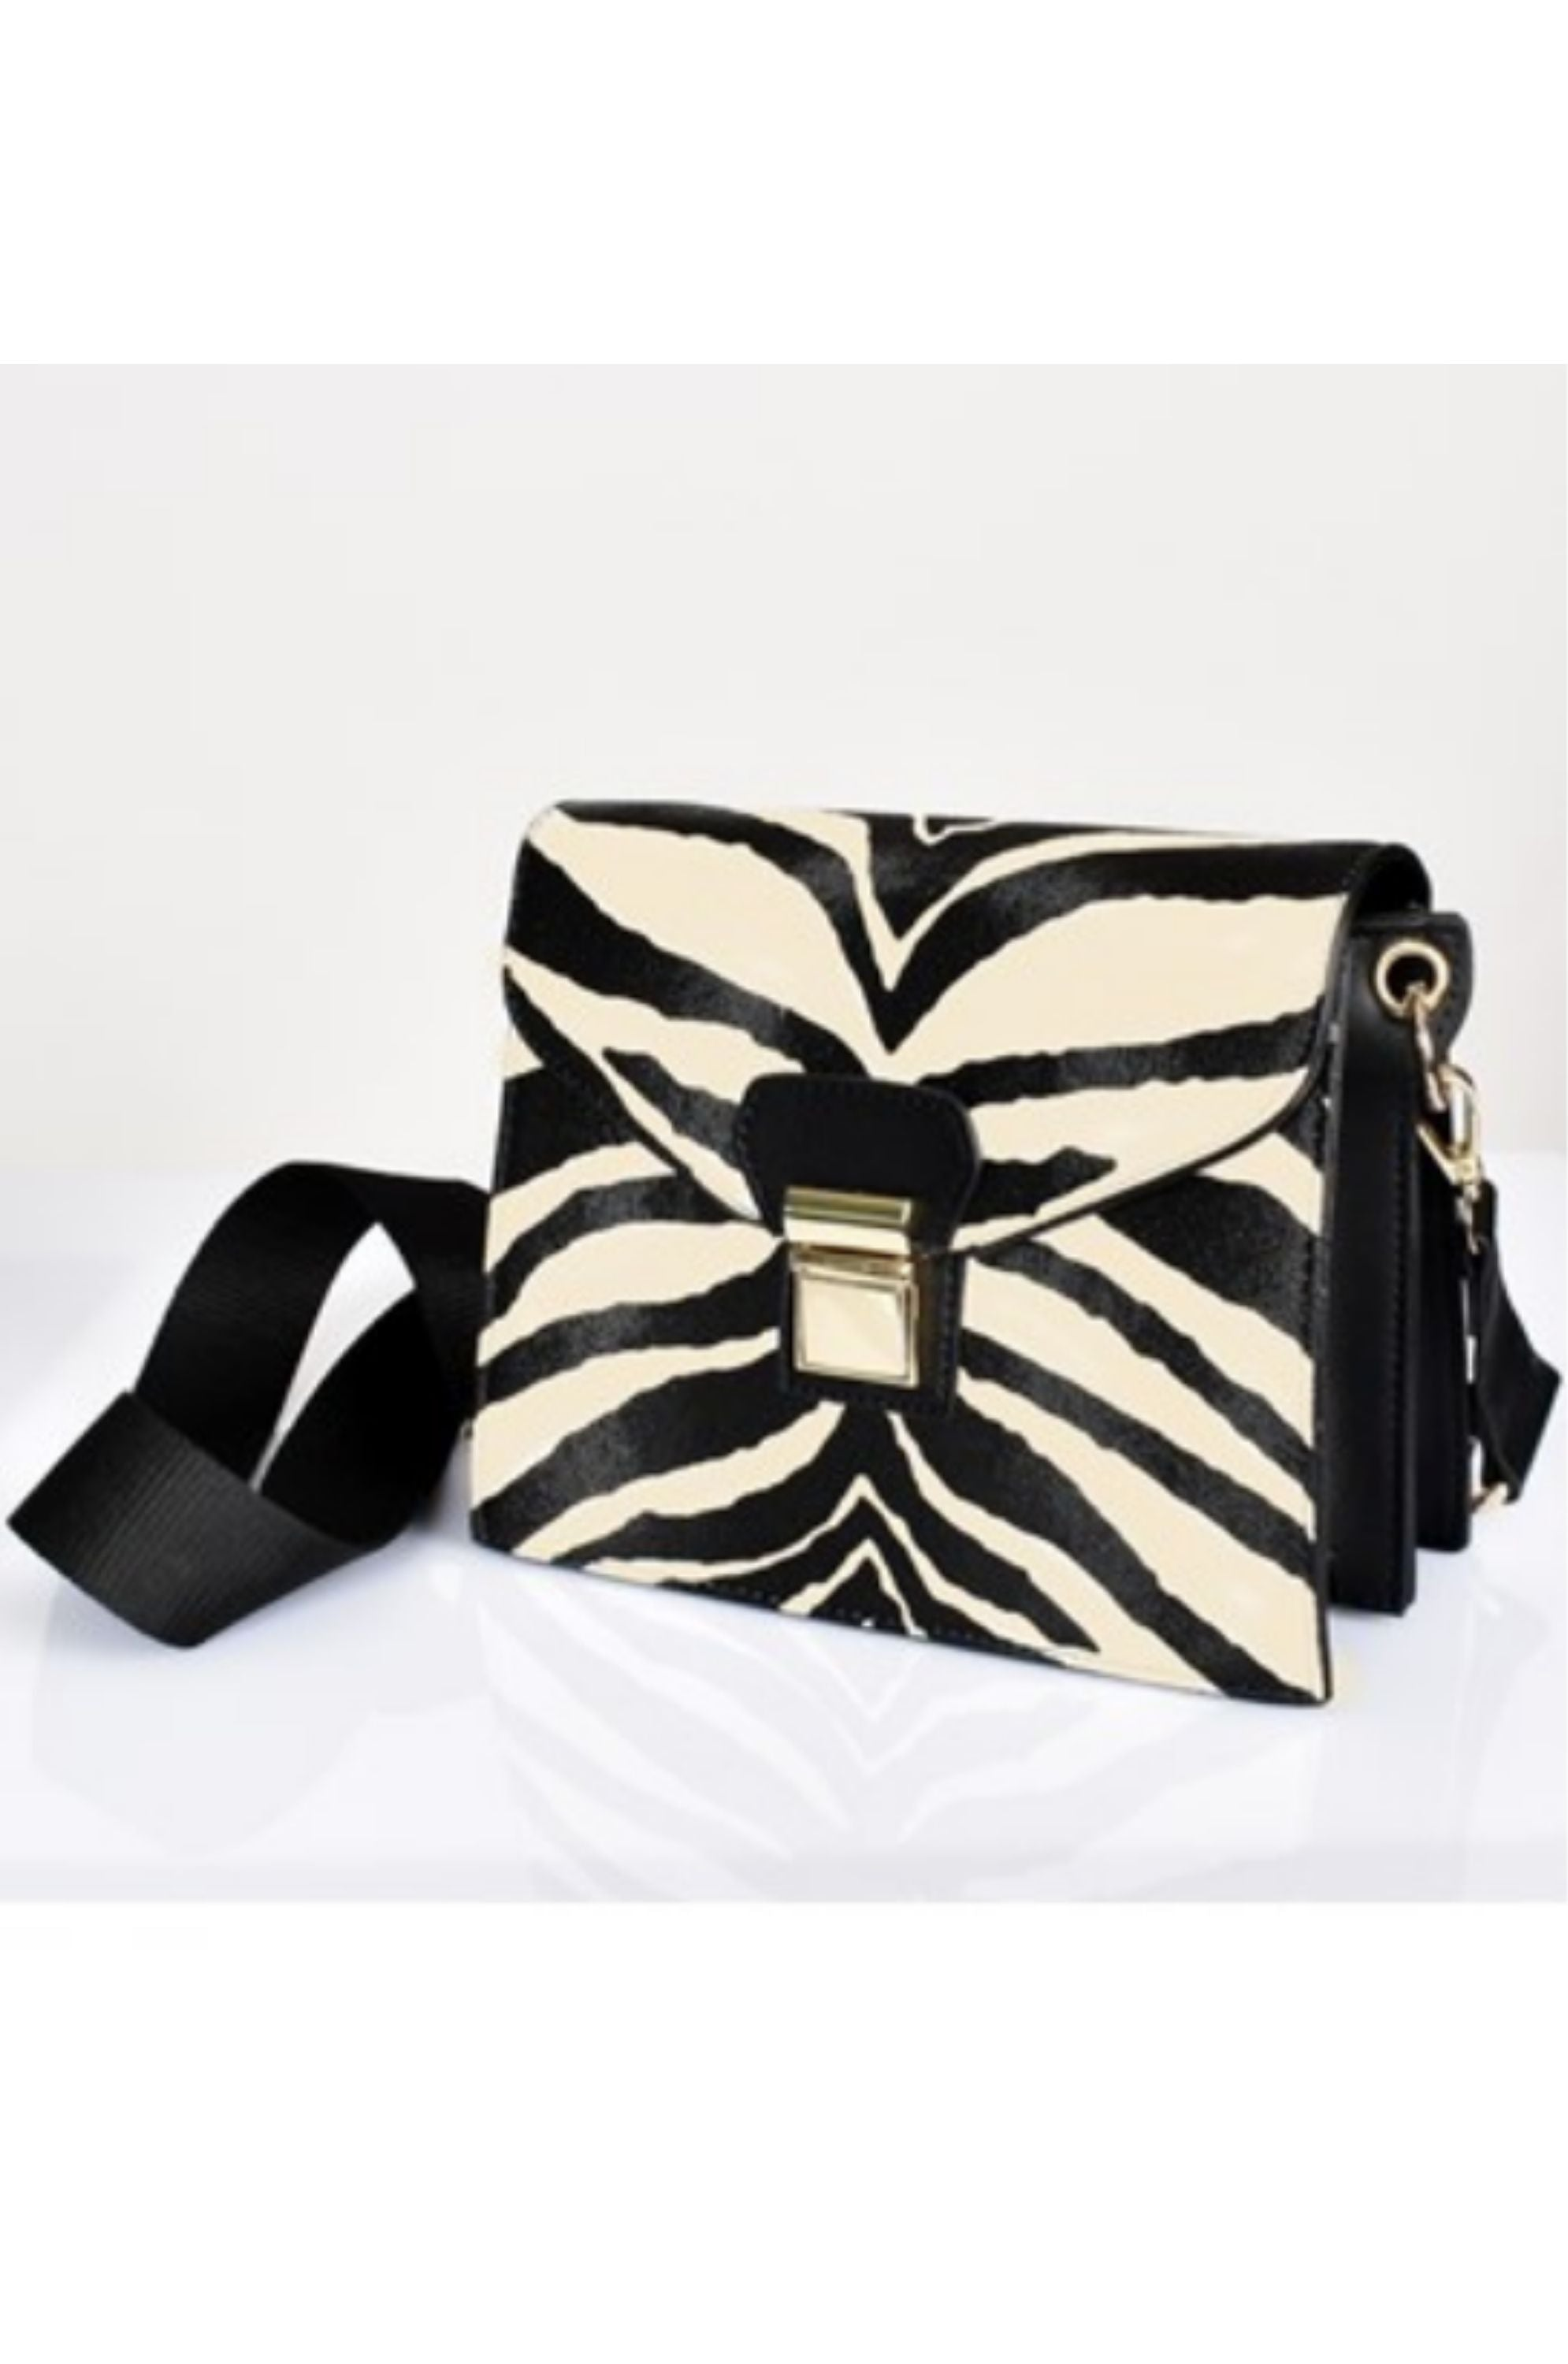 Chelsea Zebra Accordion Bag